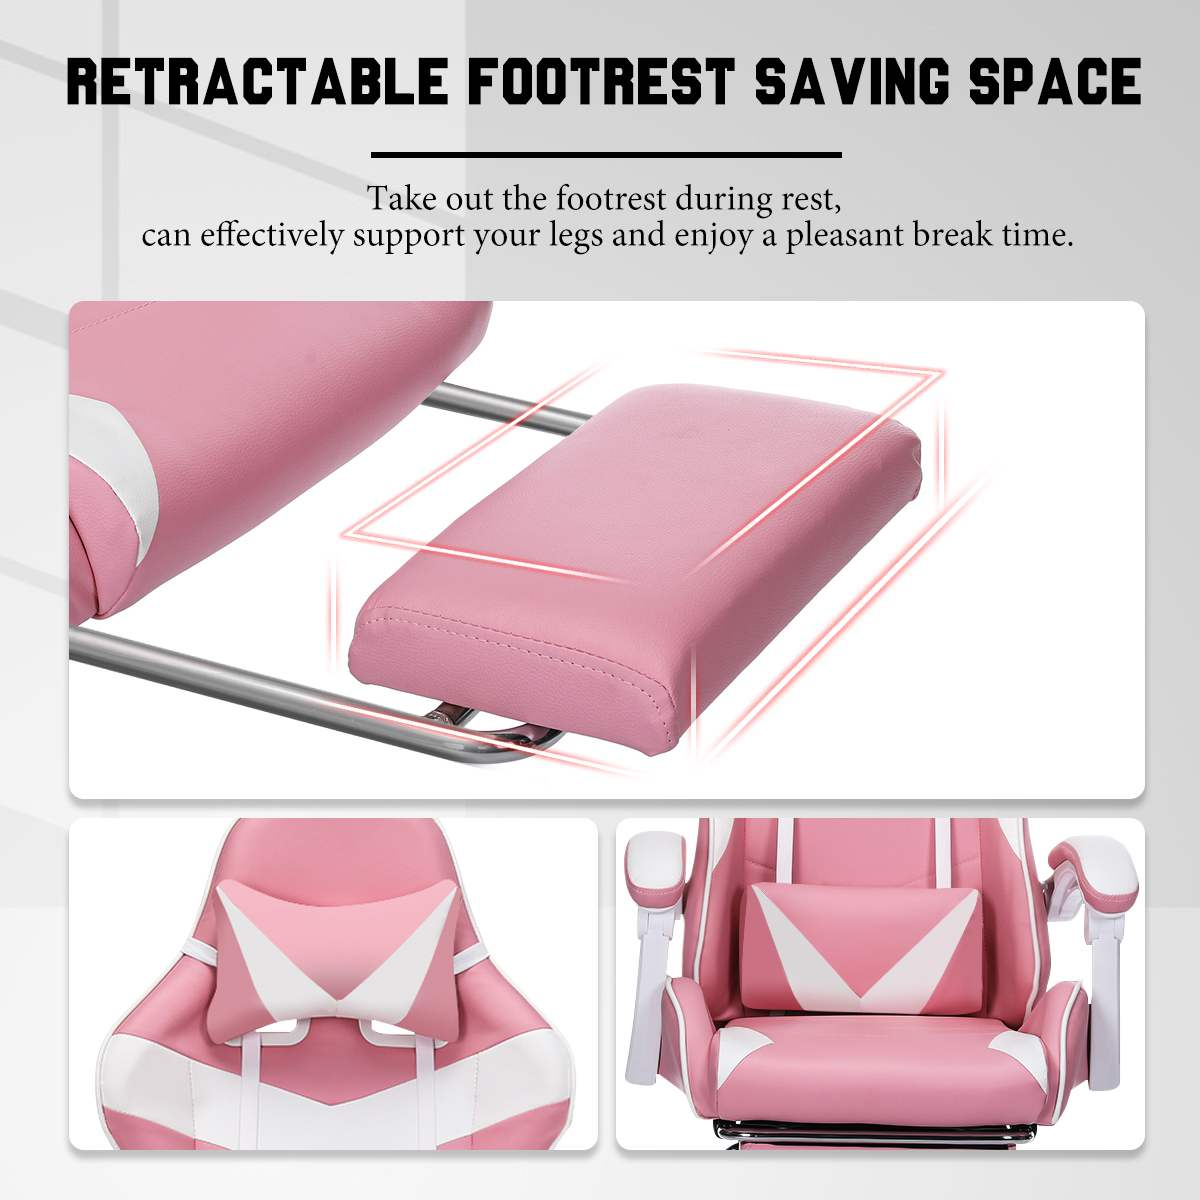 H4e5f2f33e536448889f9f65f4a8a0d87i - Office Computer Chair WCG Gaming Chair Pink Silla Leather Desk Chair Internet Cafe Gamer Chair Household Armchair Office Chair